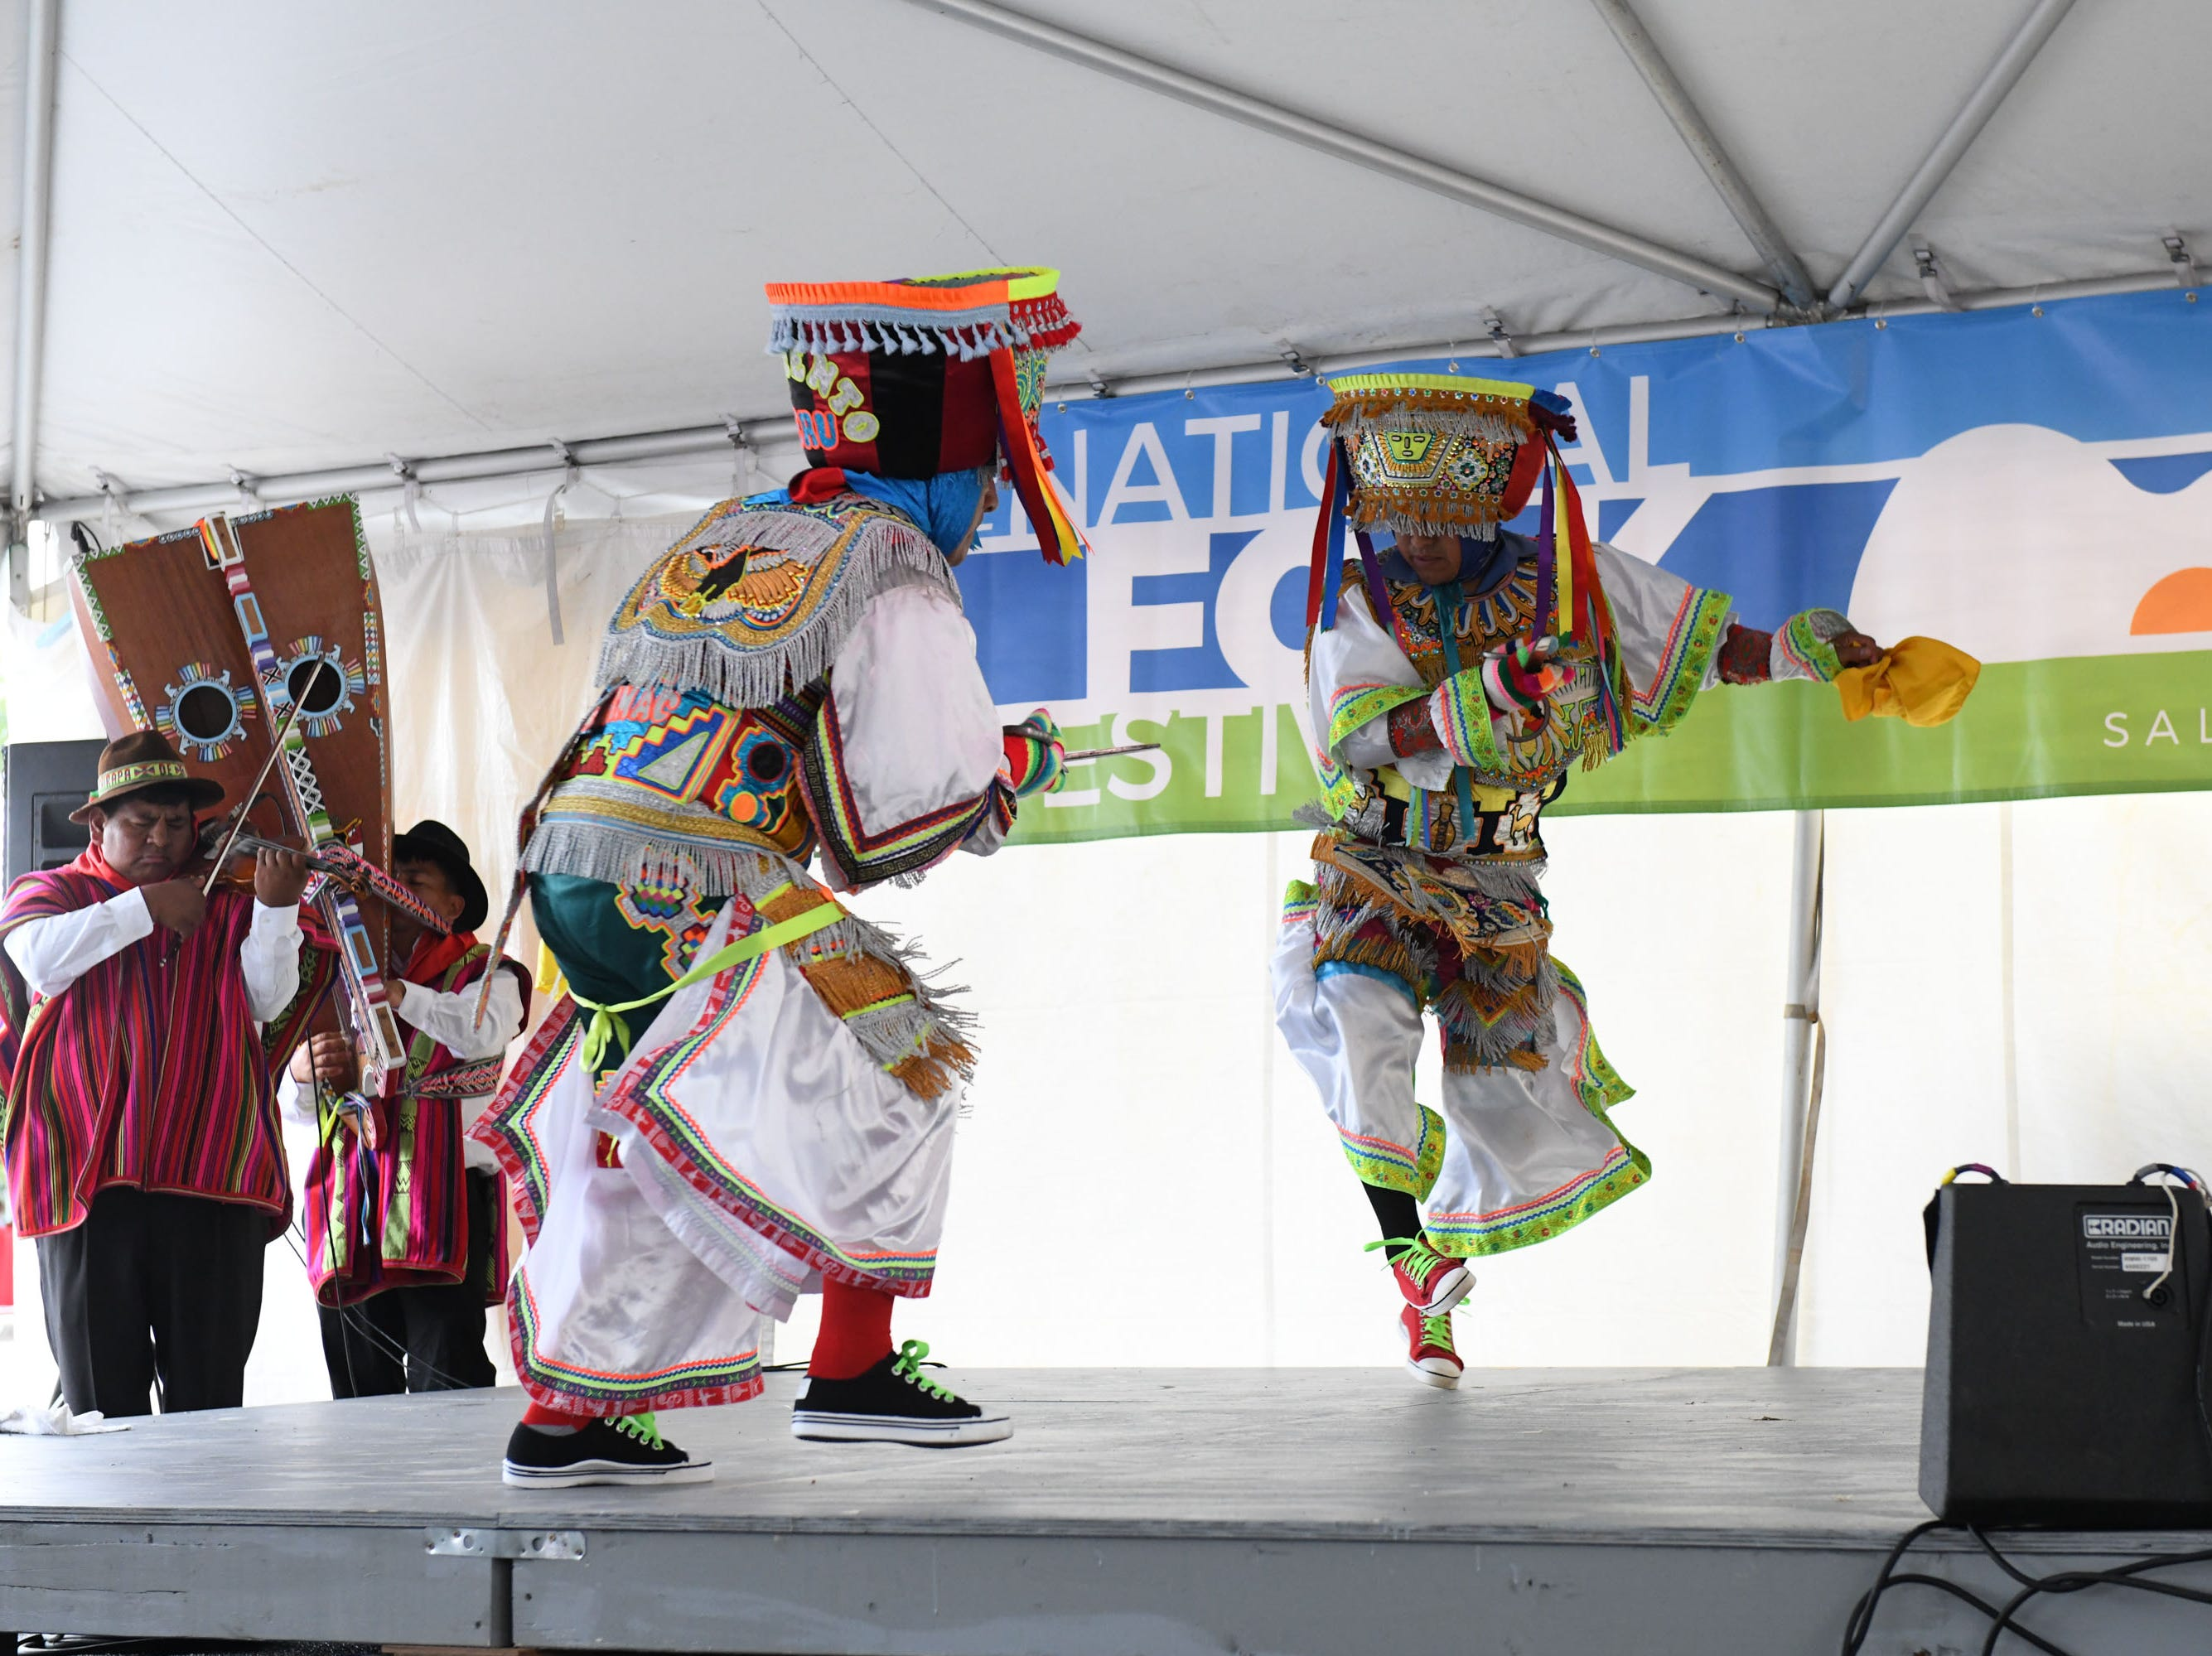 The Chankas of Peru Scissor Dancers performed at the 78th National Folk Festival on Saturday, Sept. 8, 2018.